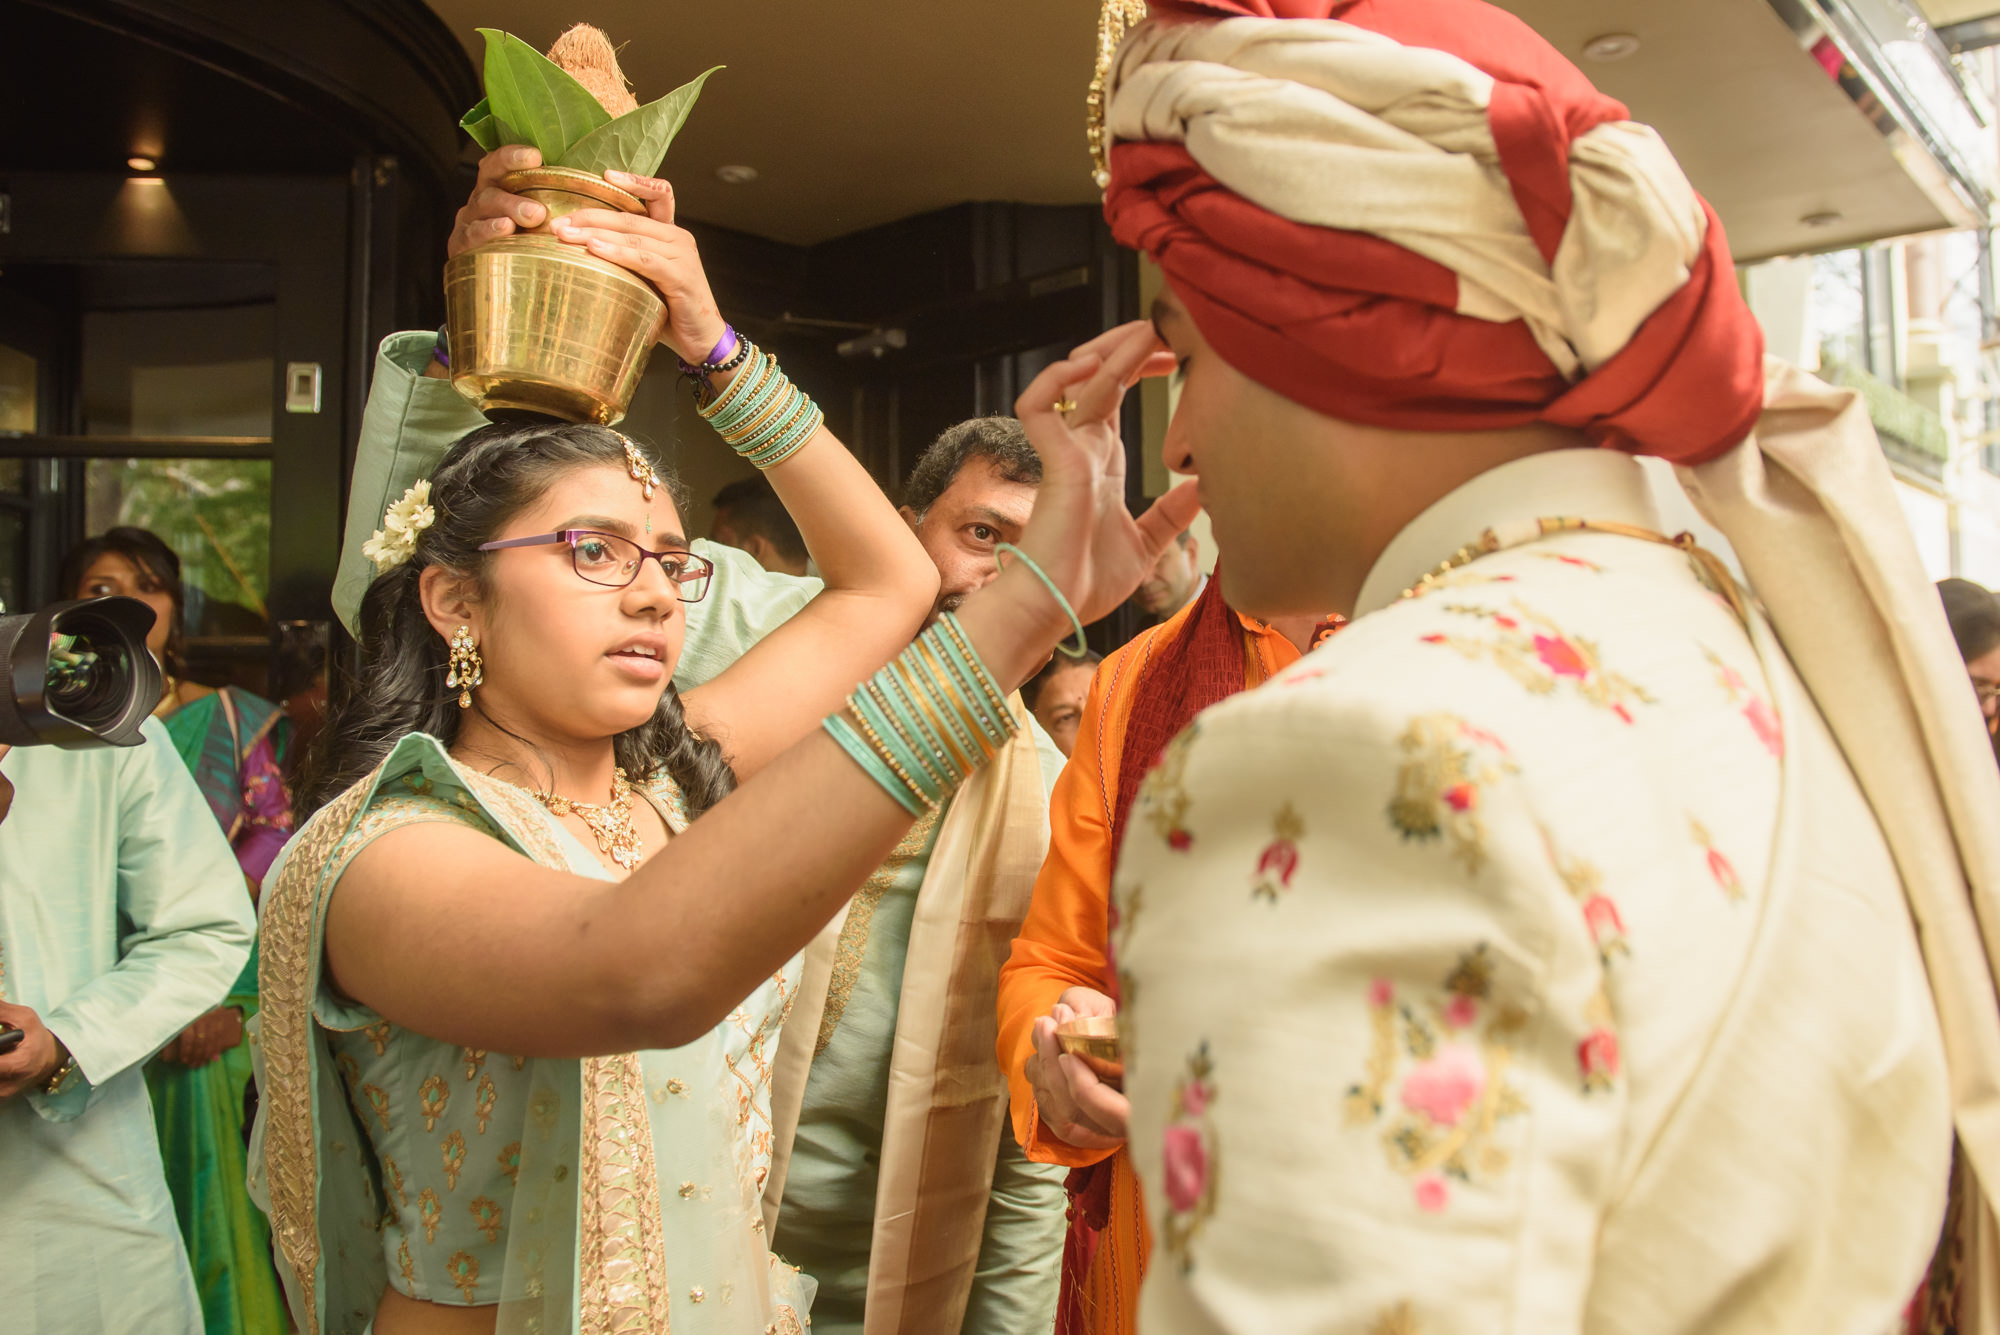 Tamil Gujrati hindu wedding photography photographer london the savoy -24.jpg